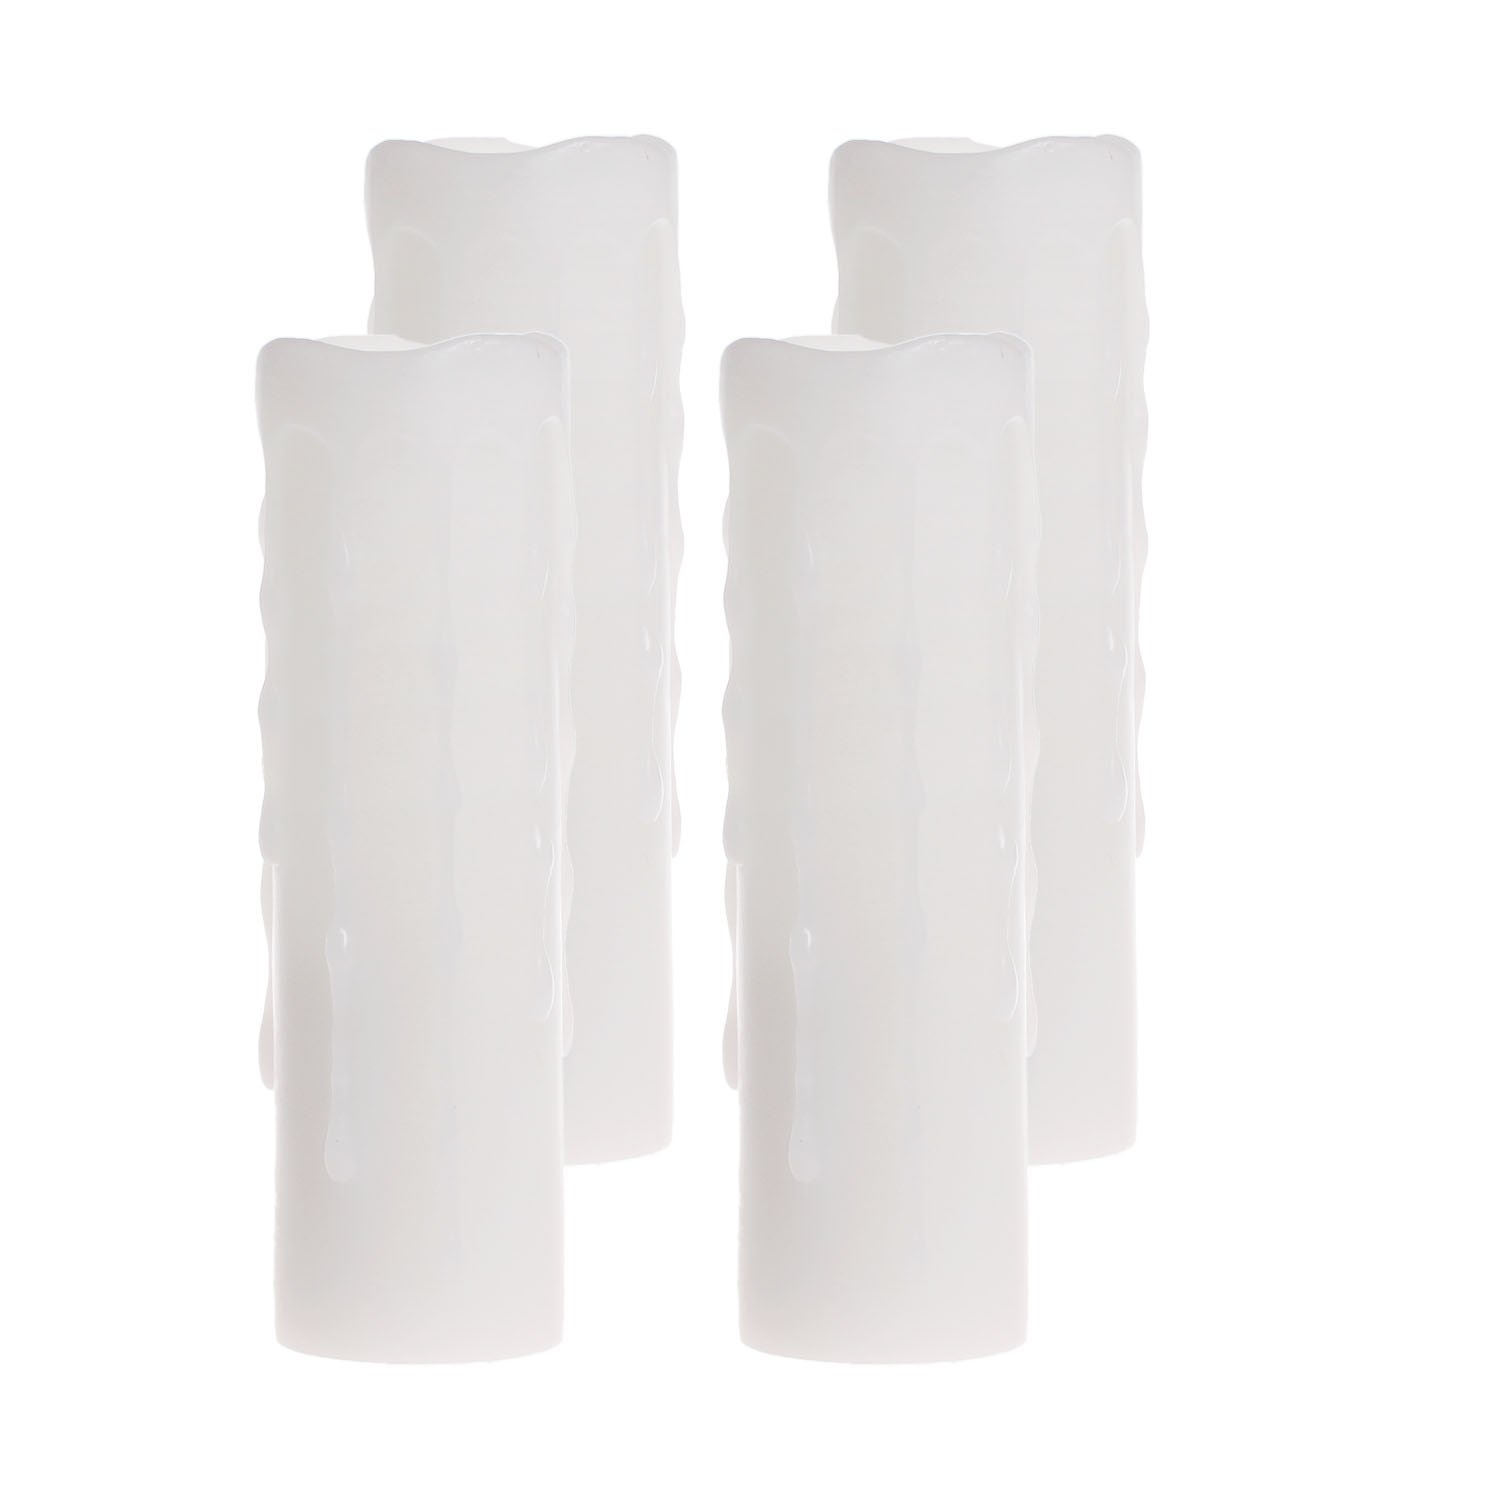 GiveULed Candles, Flickering Flameless Pillar Wax Candle with Timer,1.75x6 Inches,White,Pack of 4